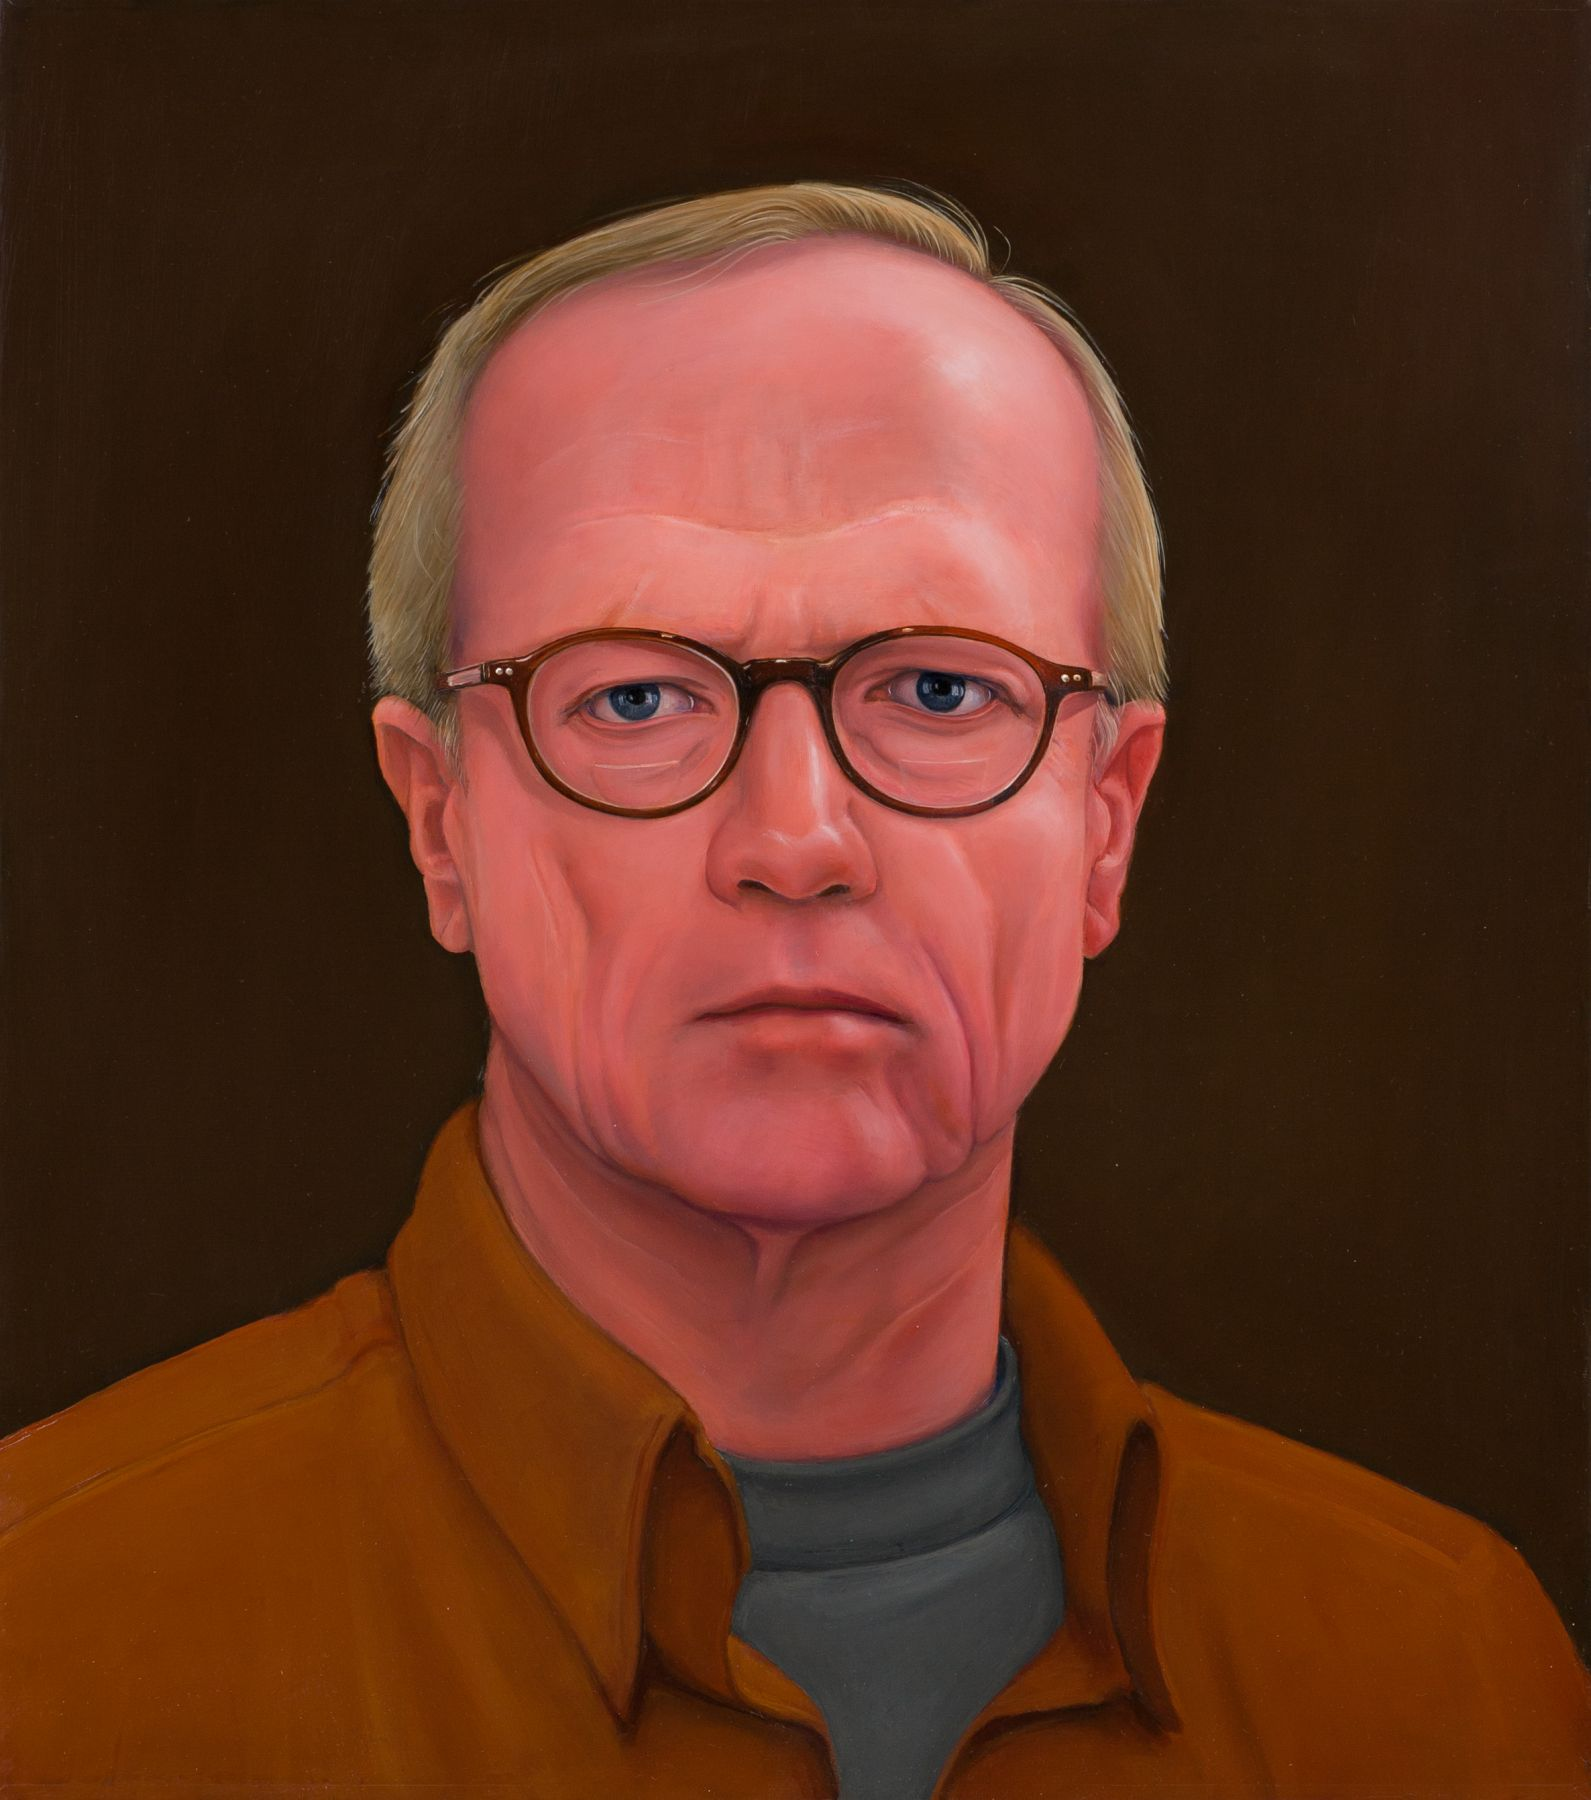 William Beckman, S.P., Brown on Brown, 2013, oil on panel, 21 x 18 1/2 inches